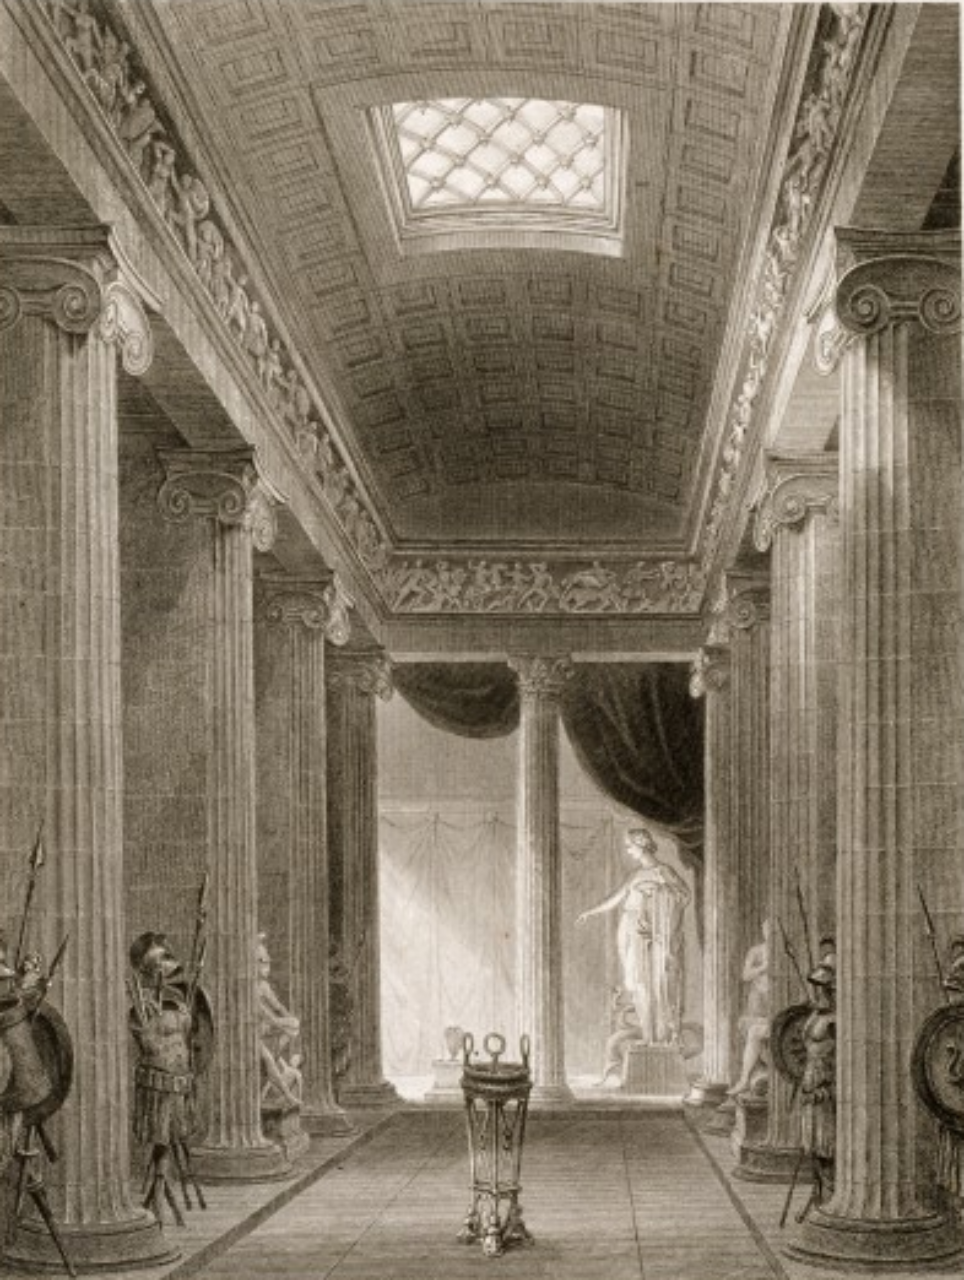 Figure 16: Temple of Apollo Epicurius, conjectural interior view by Charles R. Cockerell, 1860. (Wikipedia Images)